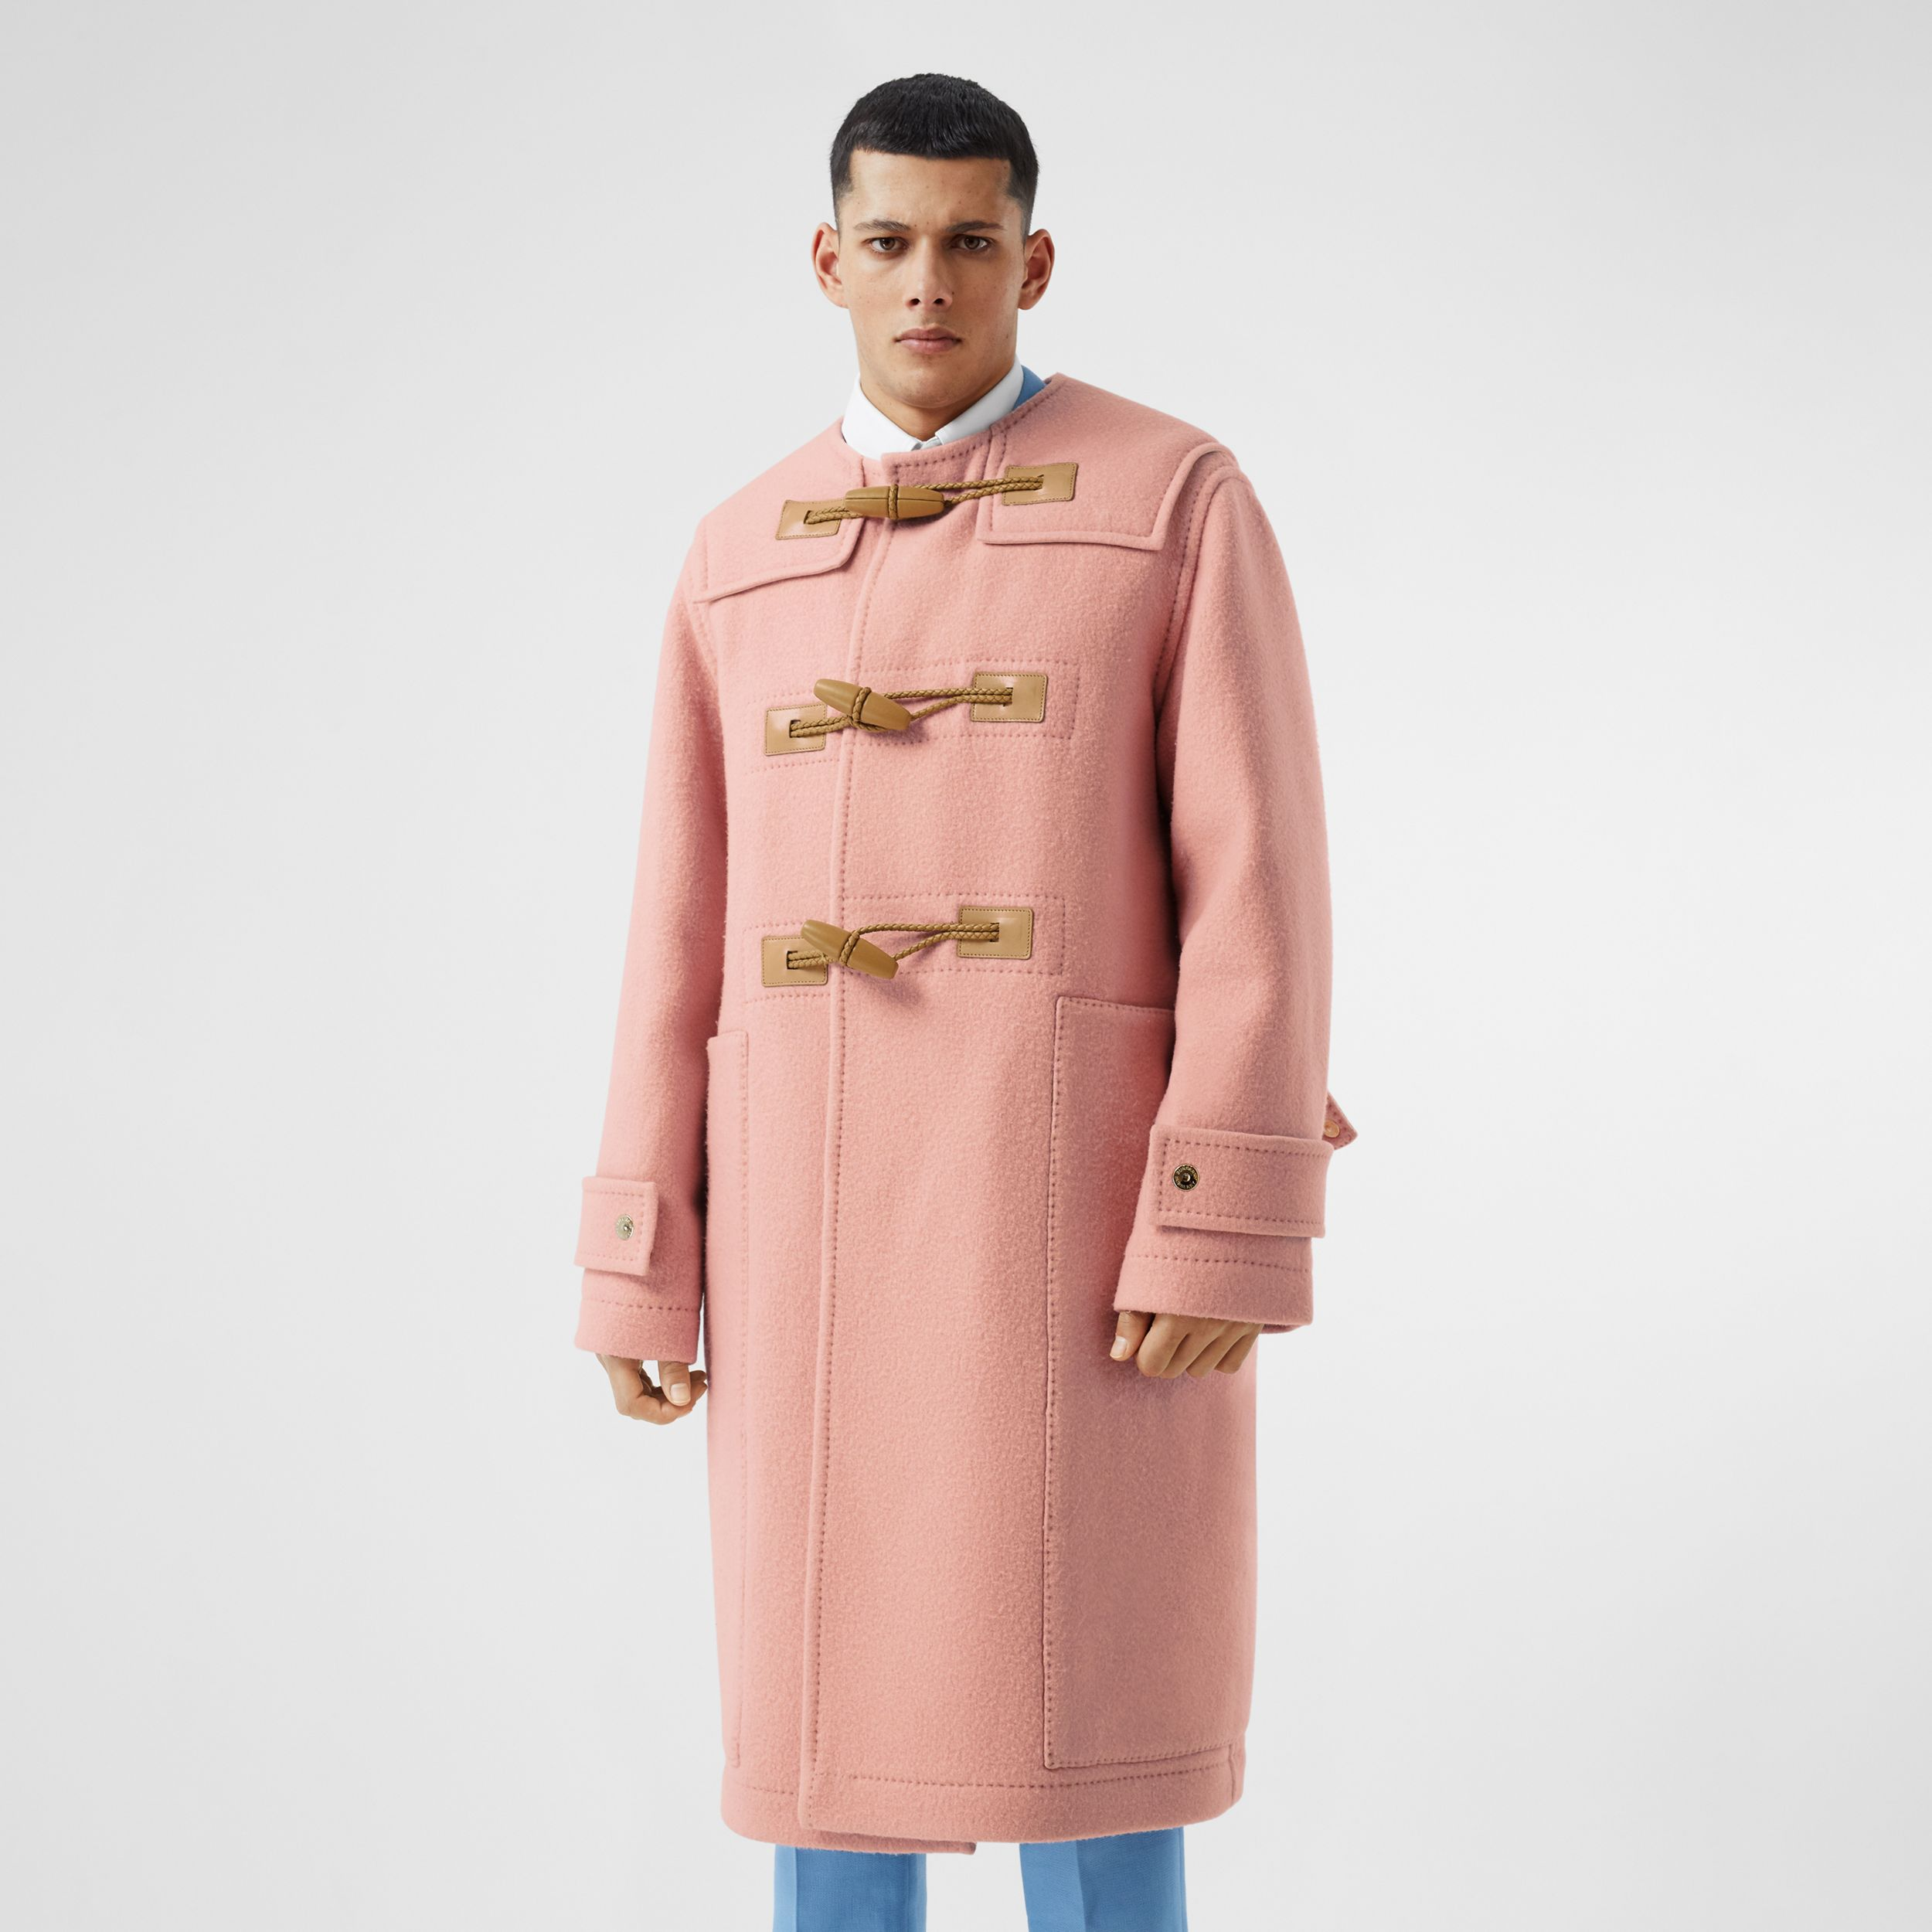 Vintage Check-lined Felted Wool Duffle Coat in Dusty Pink - Men | Burberry - 1